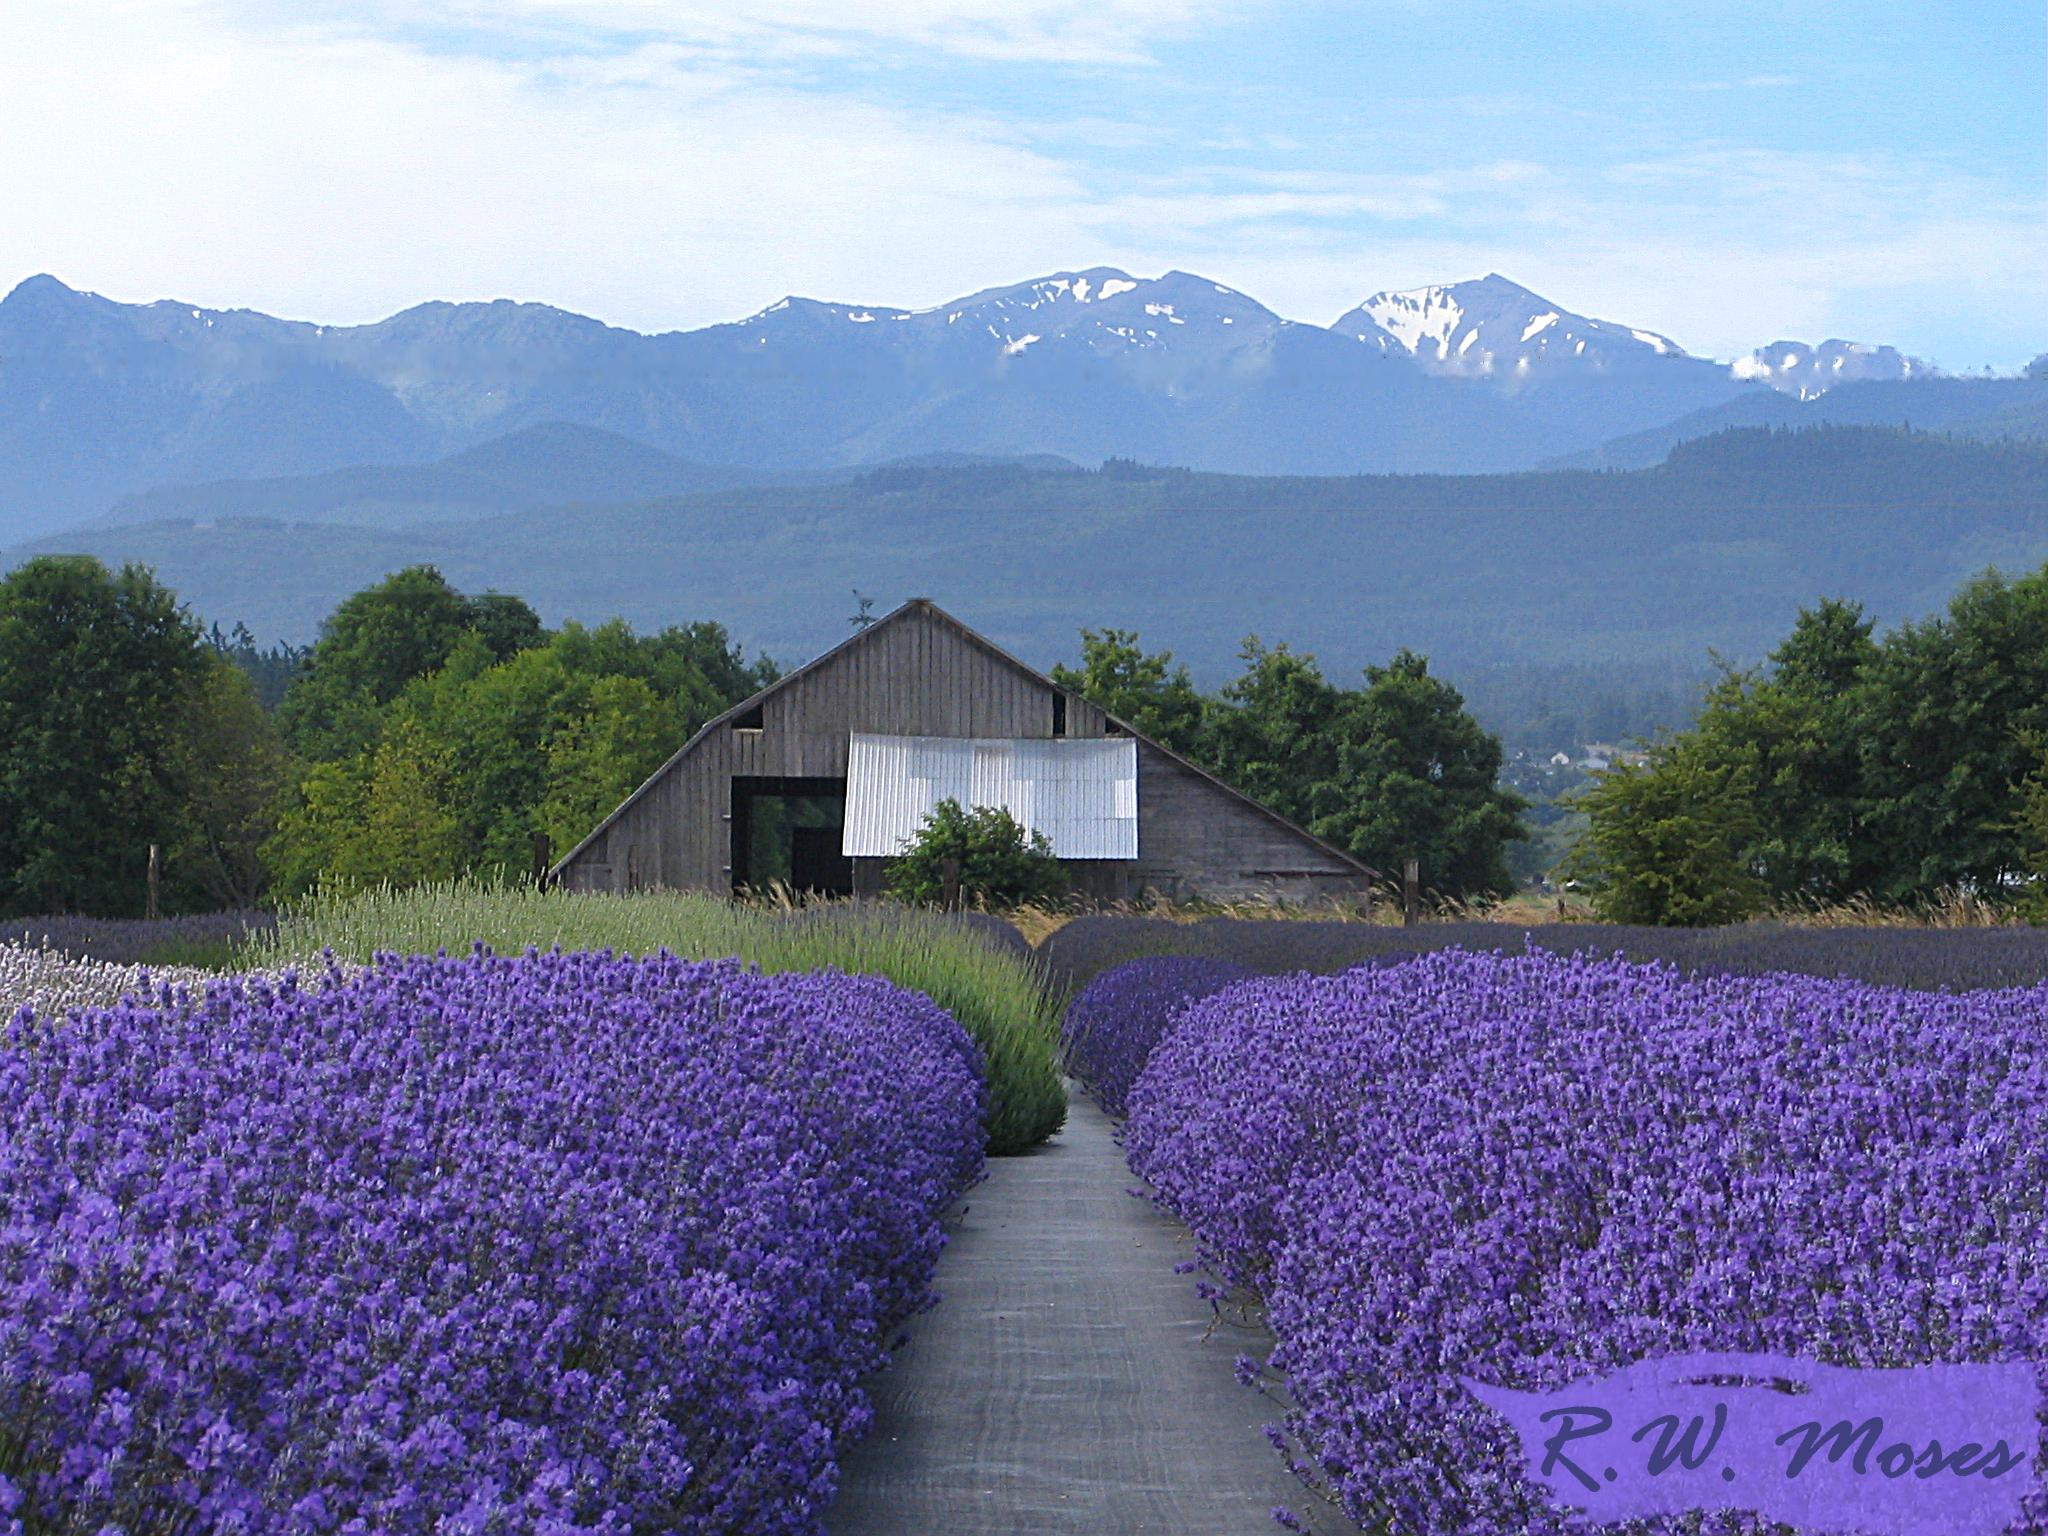 Lavender in full-bloom in Sequim. Photo copyright 2009 by Robin Moses. Used with permission.